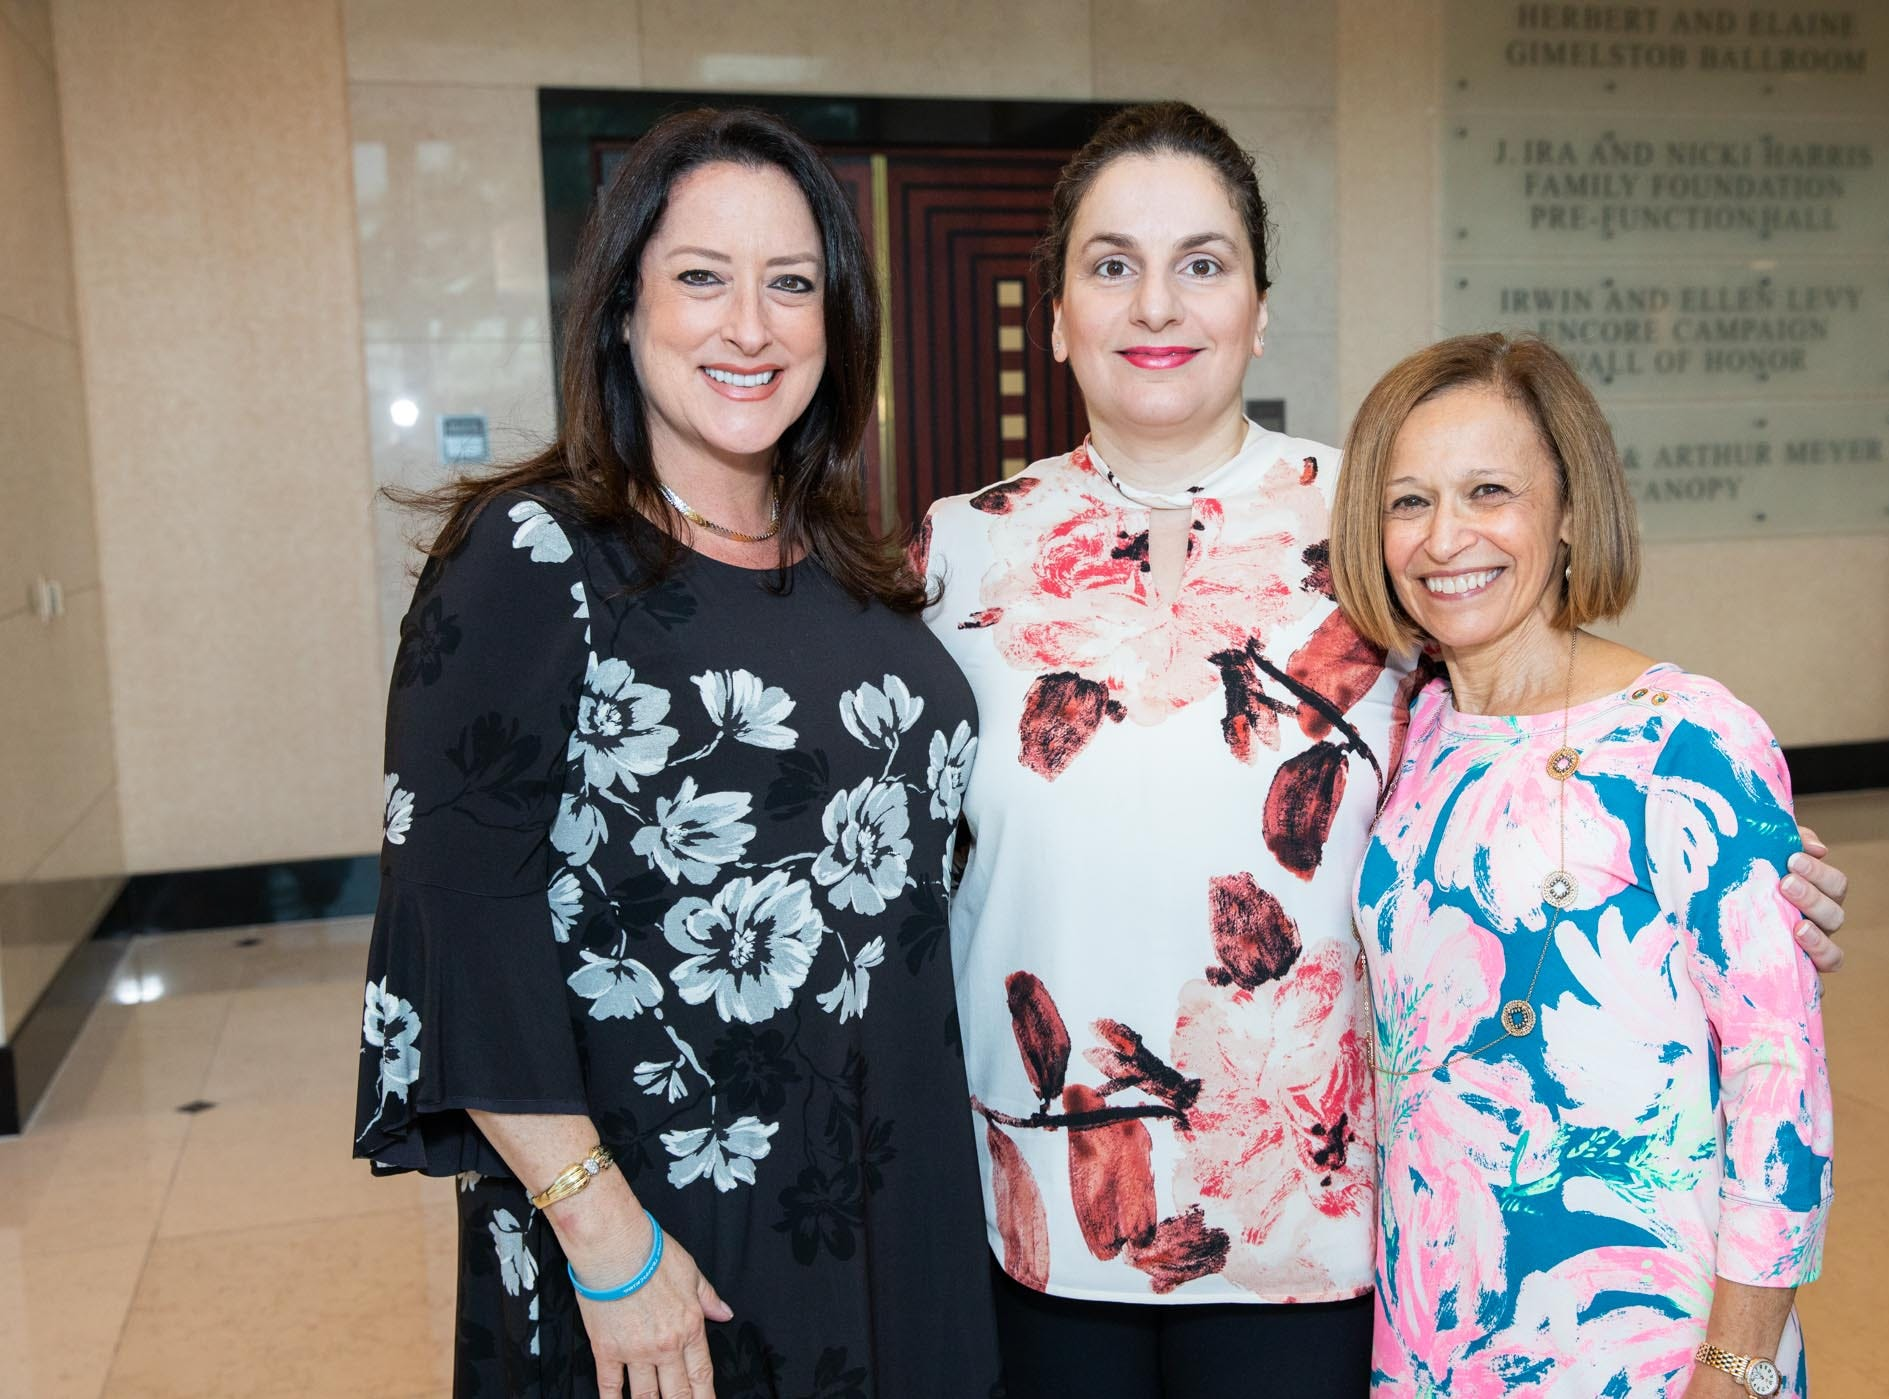 Michelle Martin Carr, left, Elena Peroulakis and Donna Goldfarb attend Catch the Wave of Hope's breakfast to raise money and awareness about human sex trafficking.